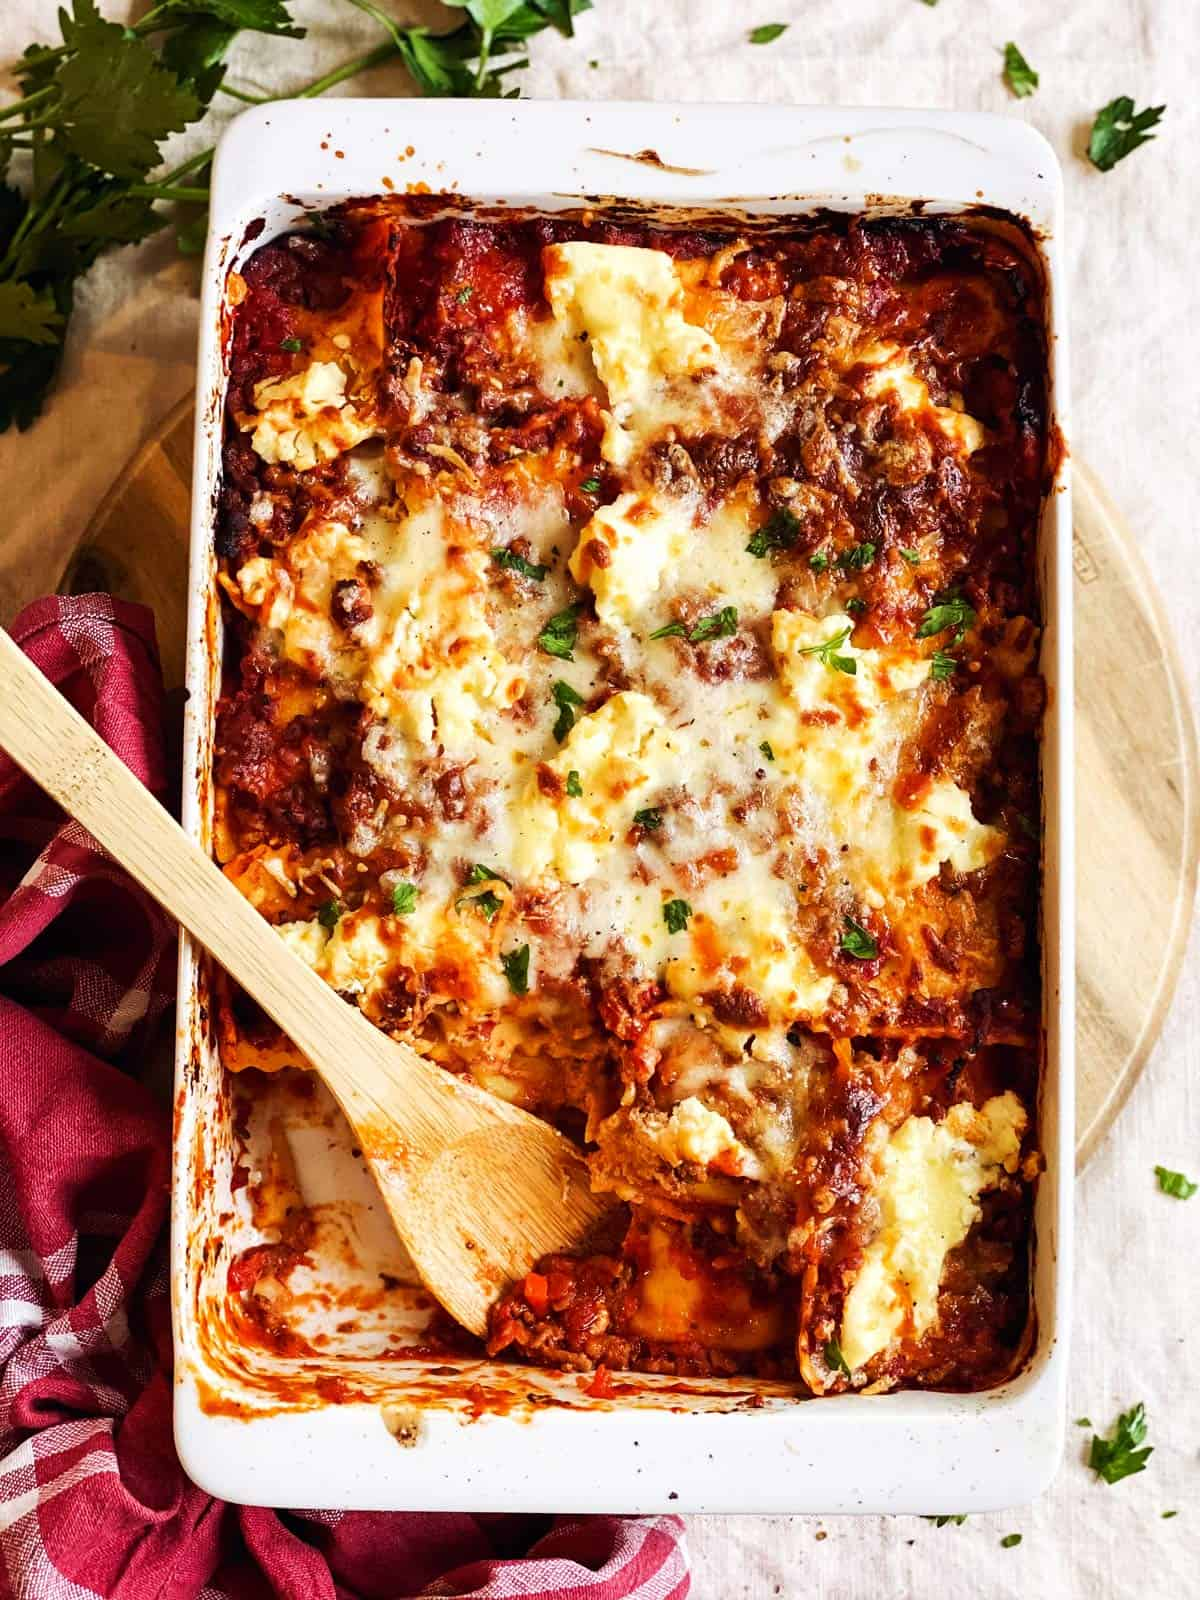 overhead view of casserole dish with baked ravioli